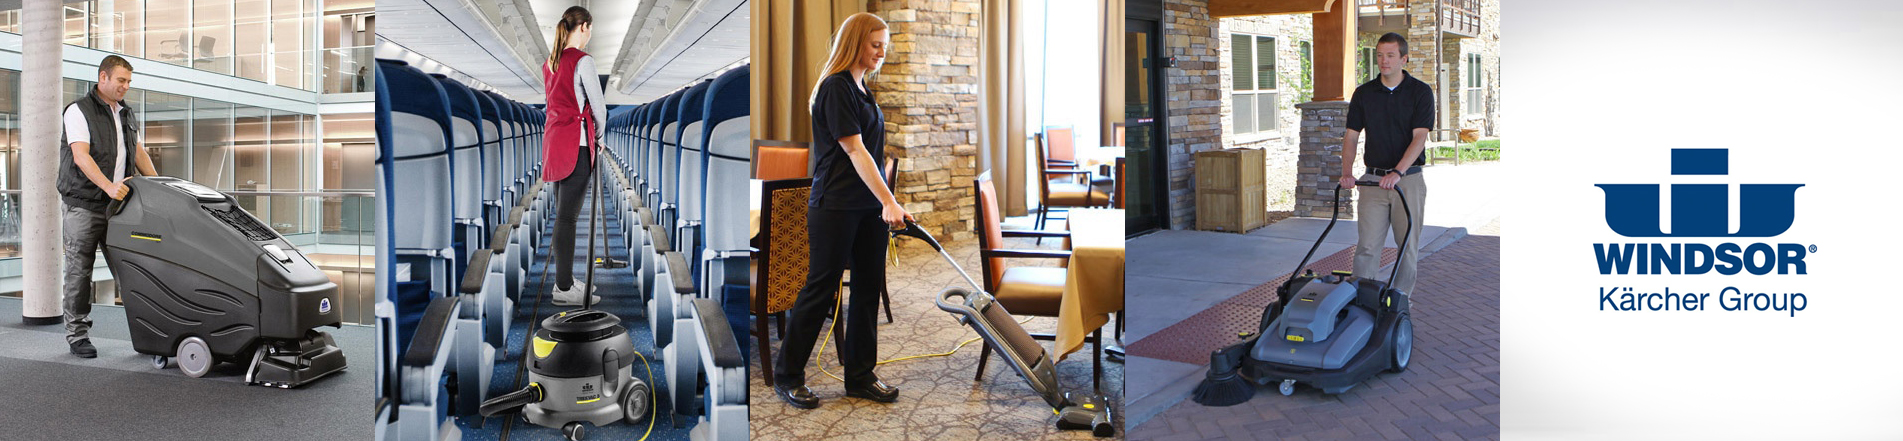 Windsor Karcher Group Janitorial Equipment